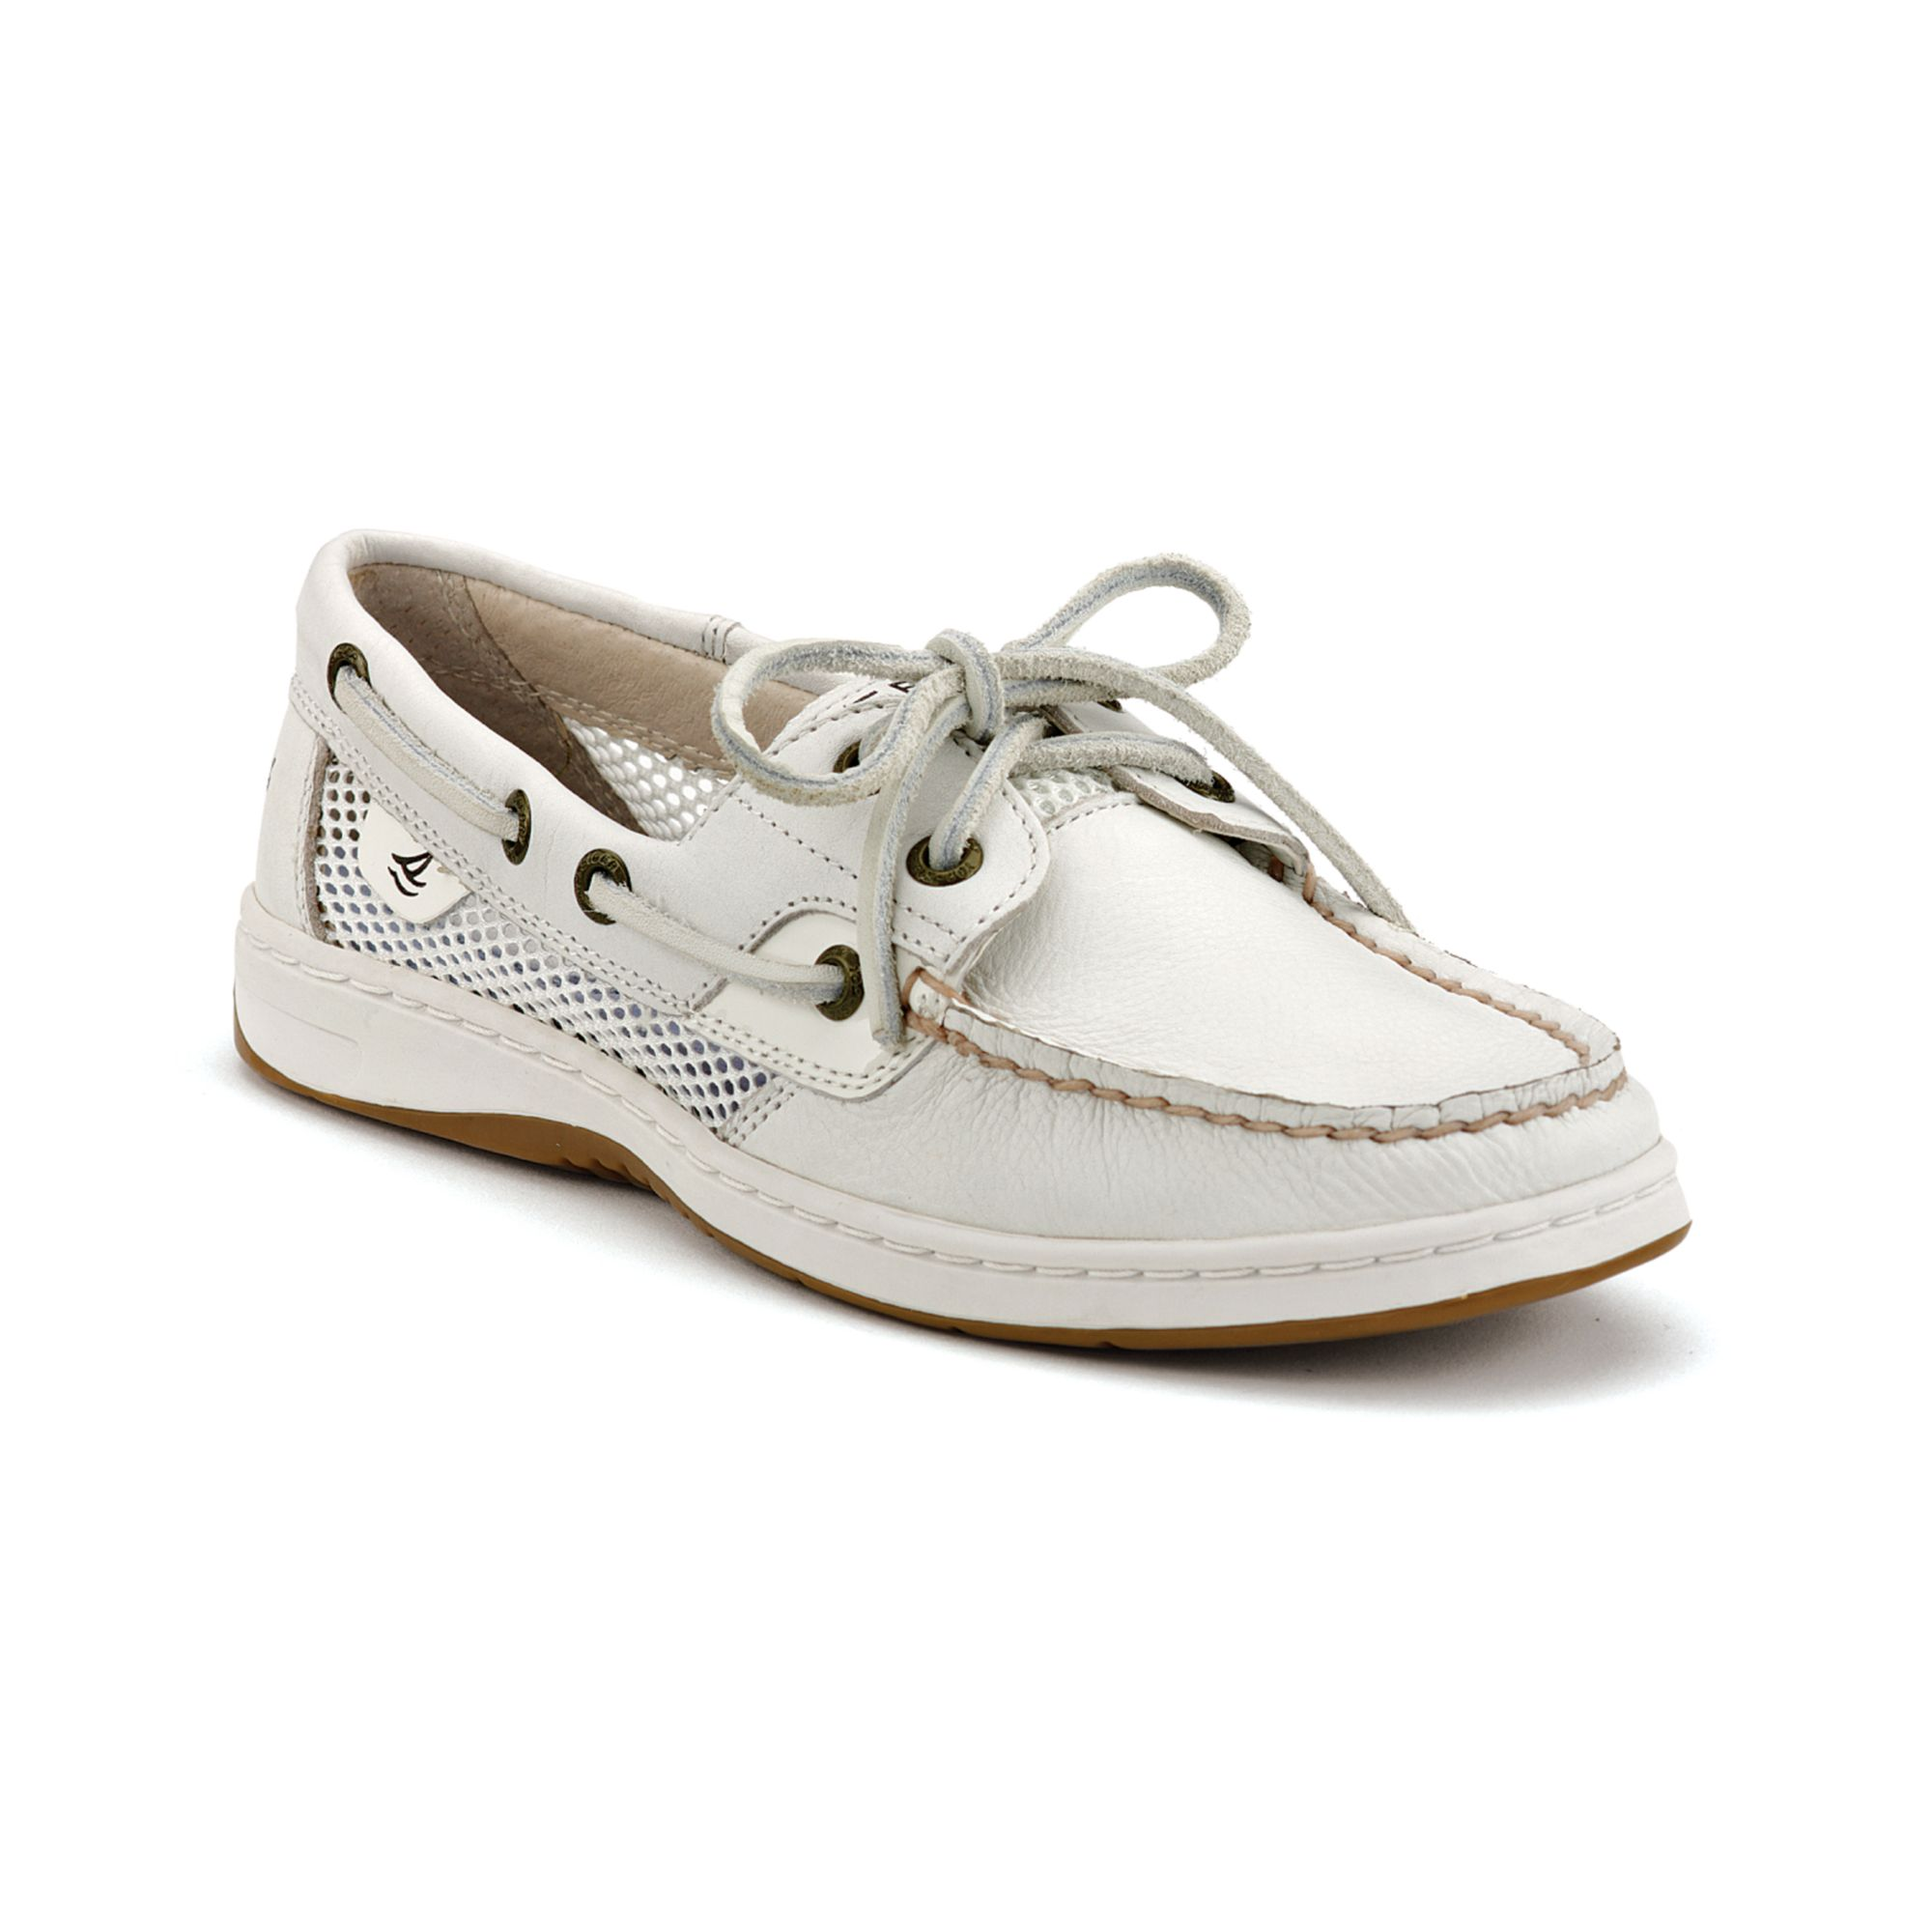 sperry top sider bluefish boat shoes in white white mesh